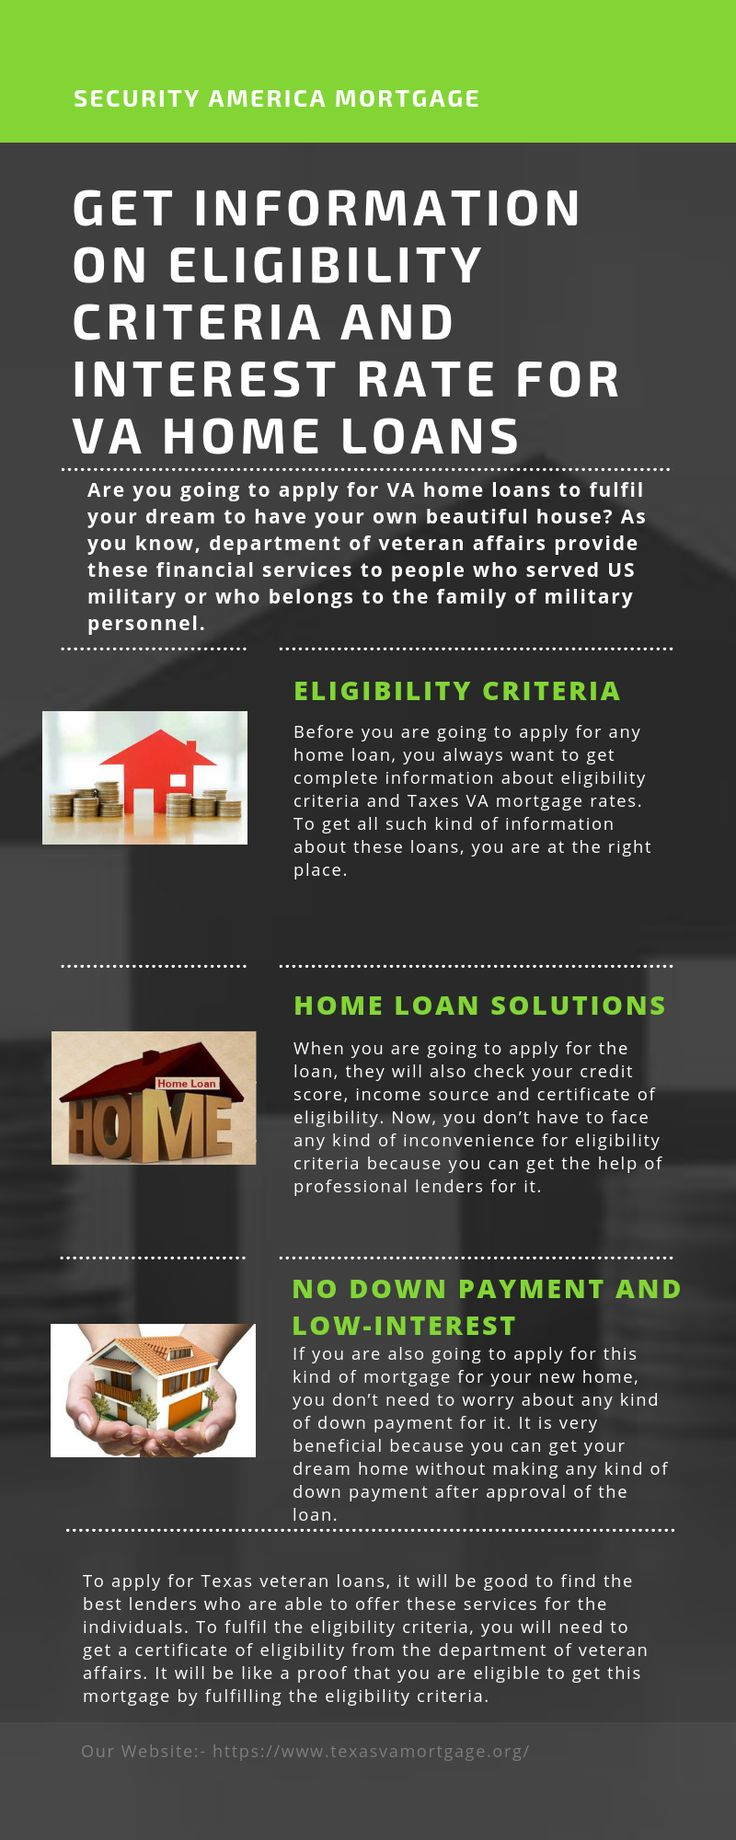 To Apply For Texas Veteran Loans It Will Be Good To Find The Best